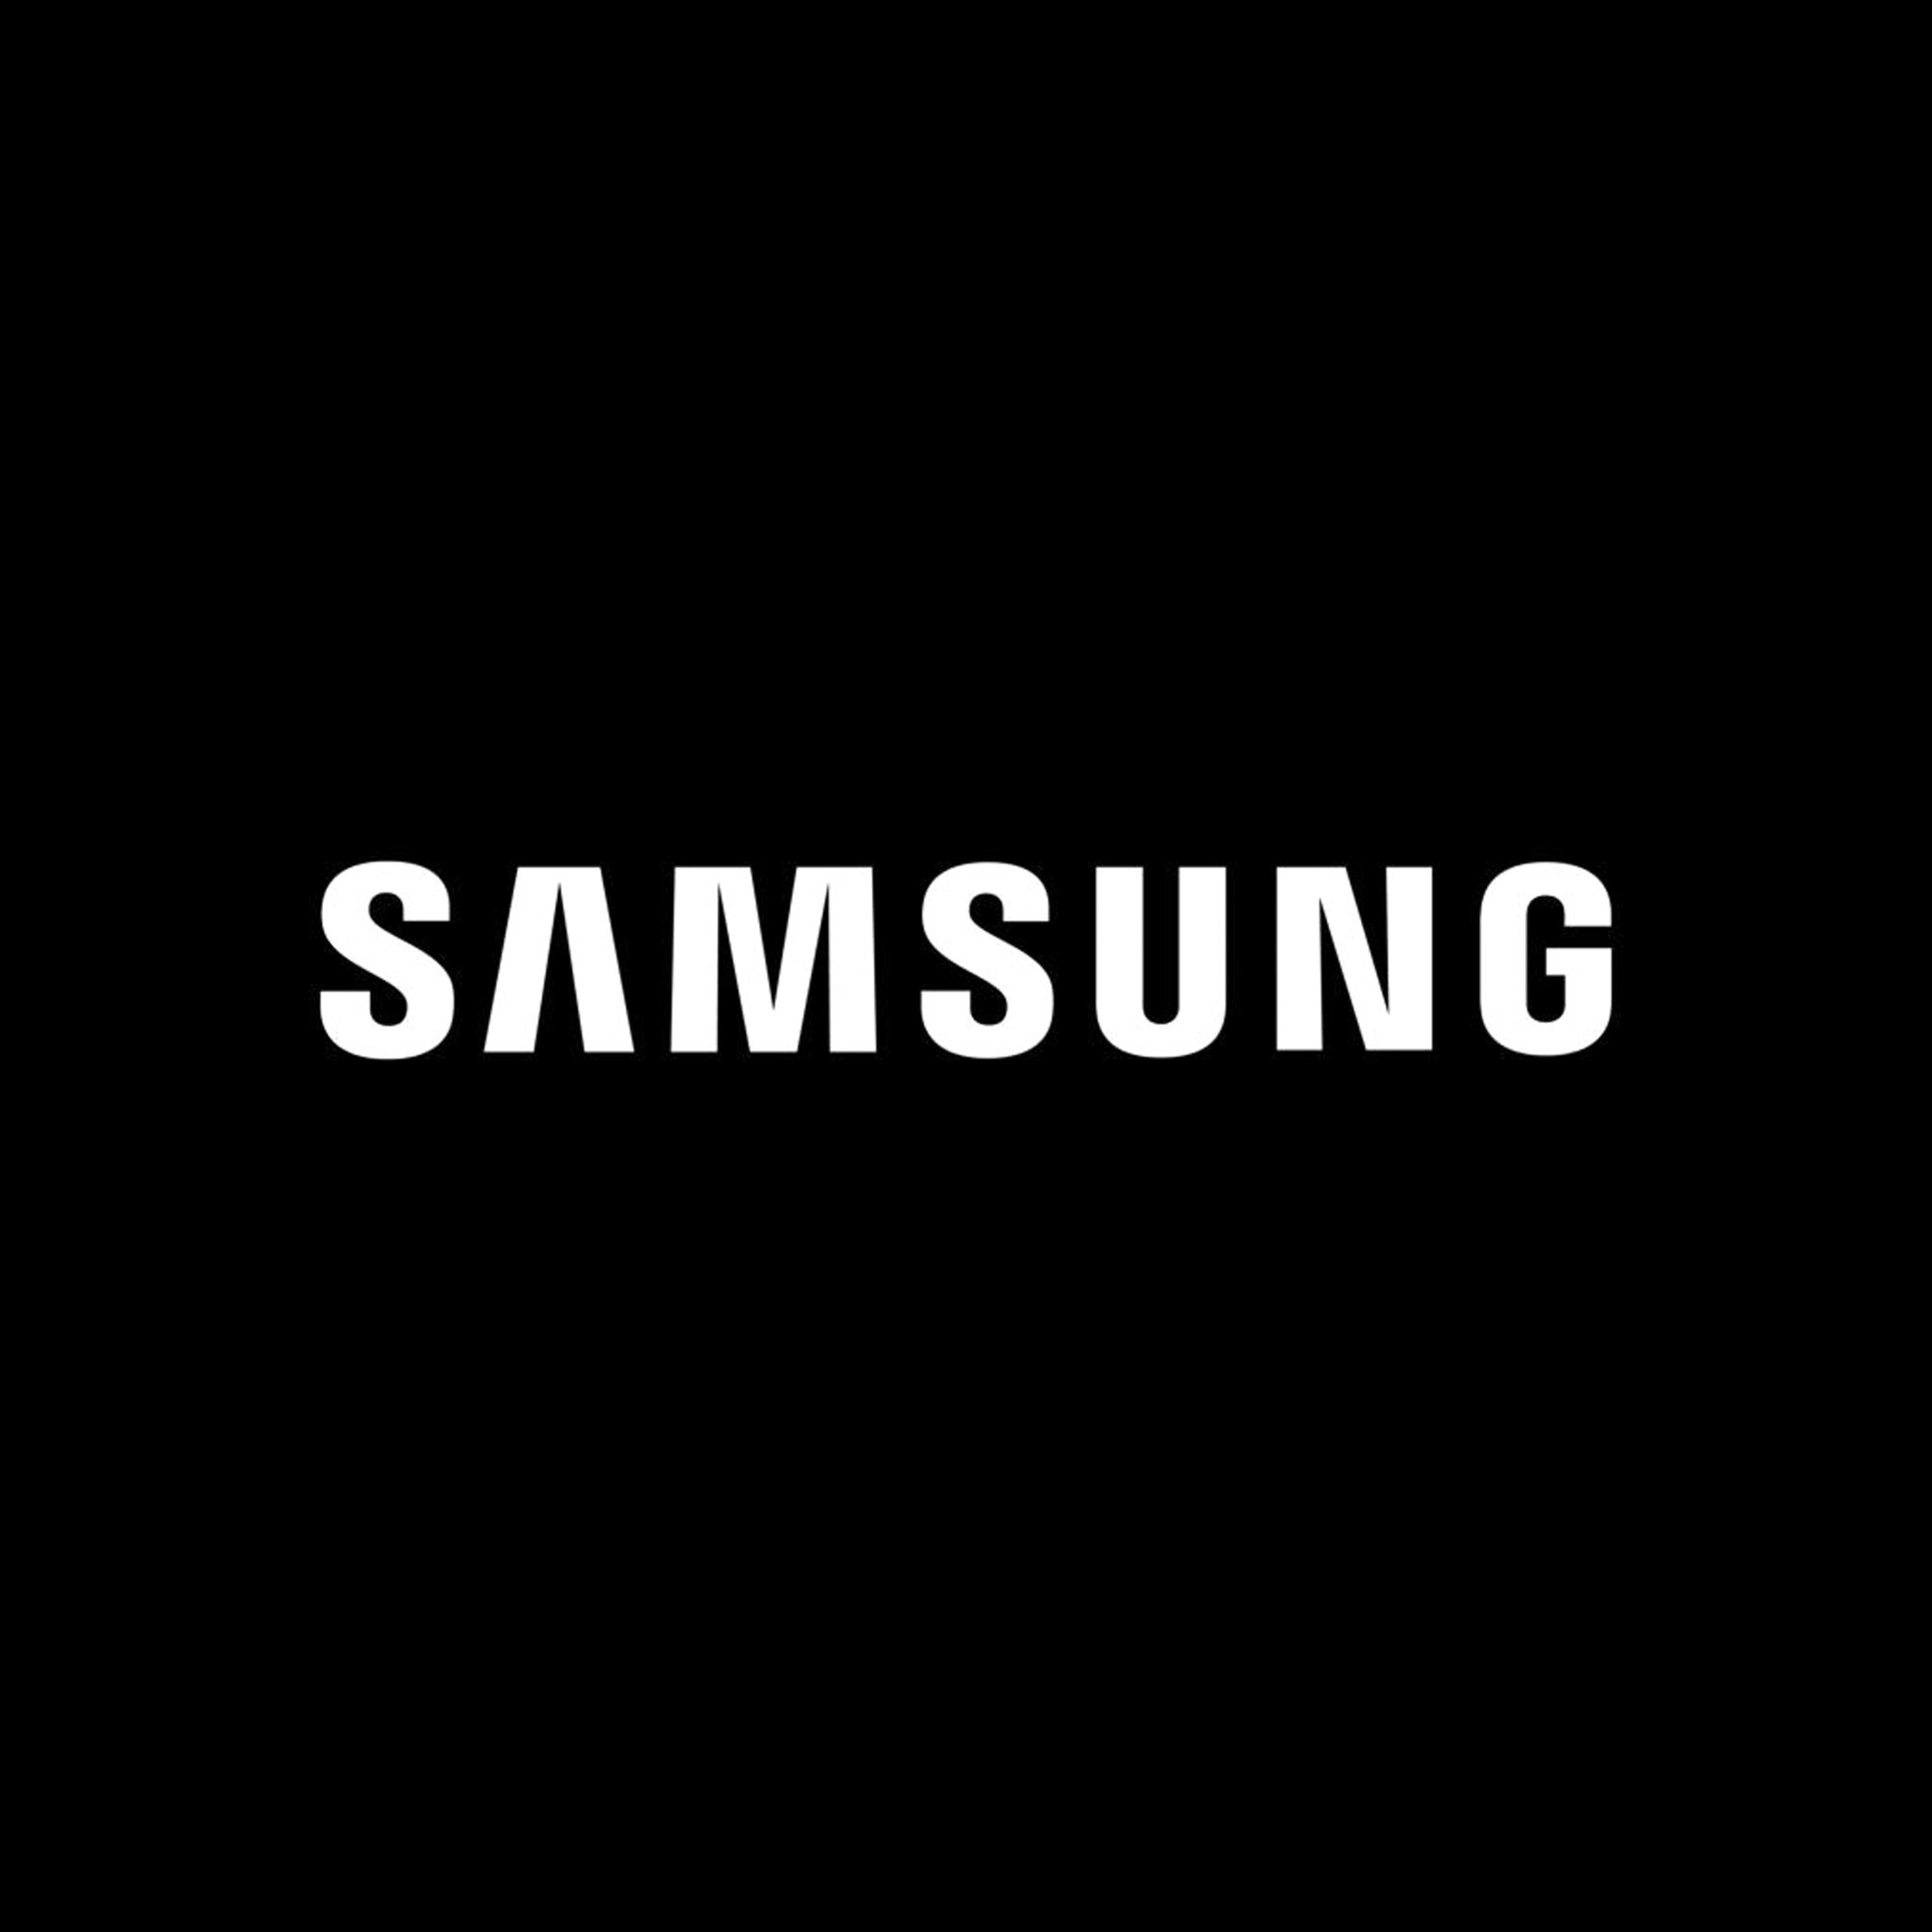 Samsung Website.jpg